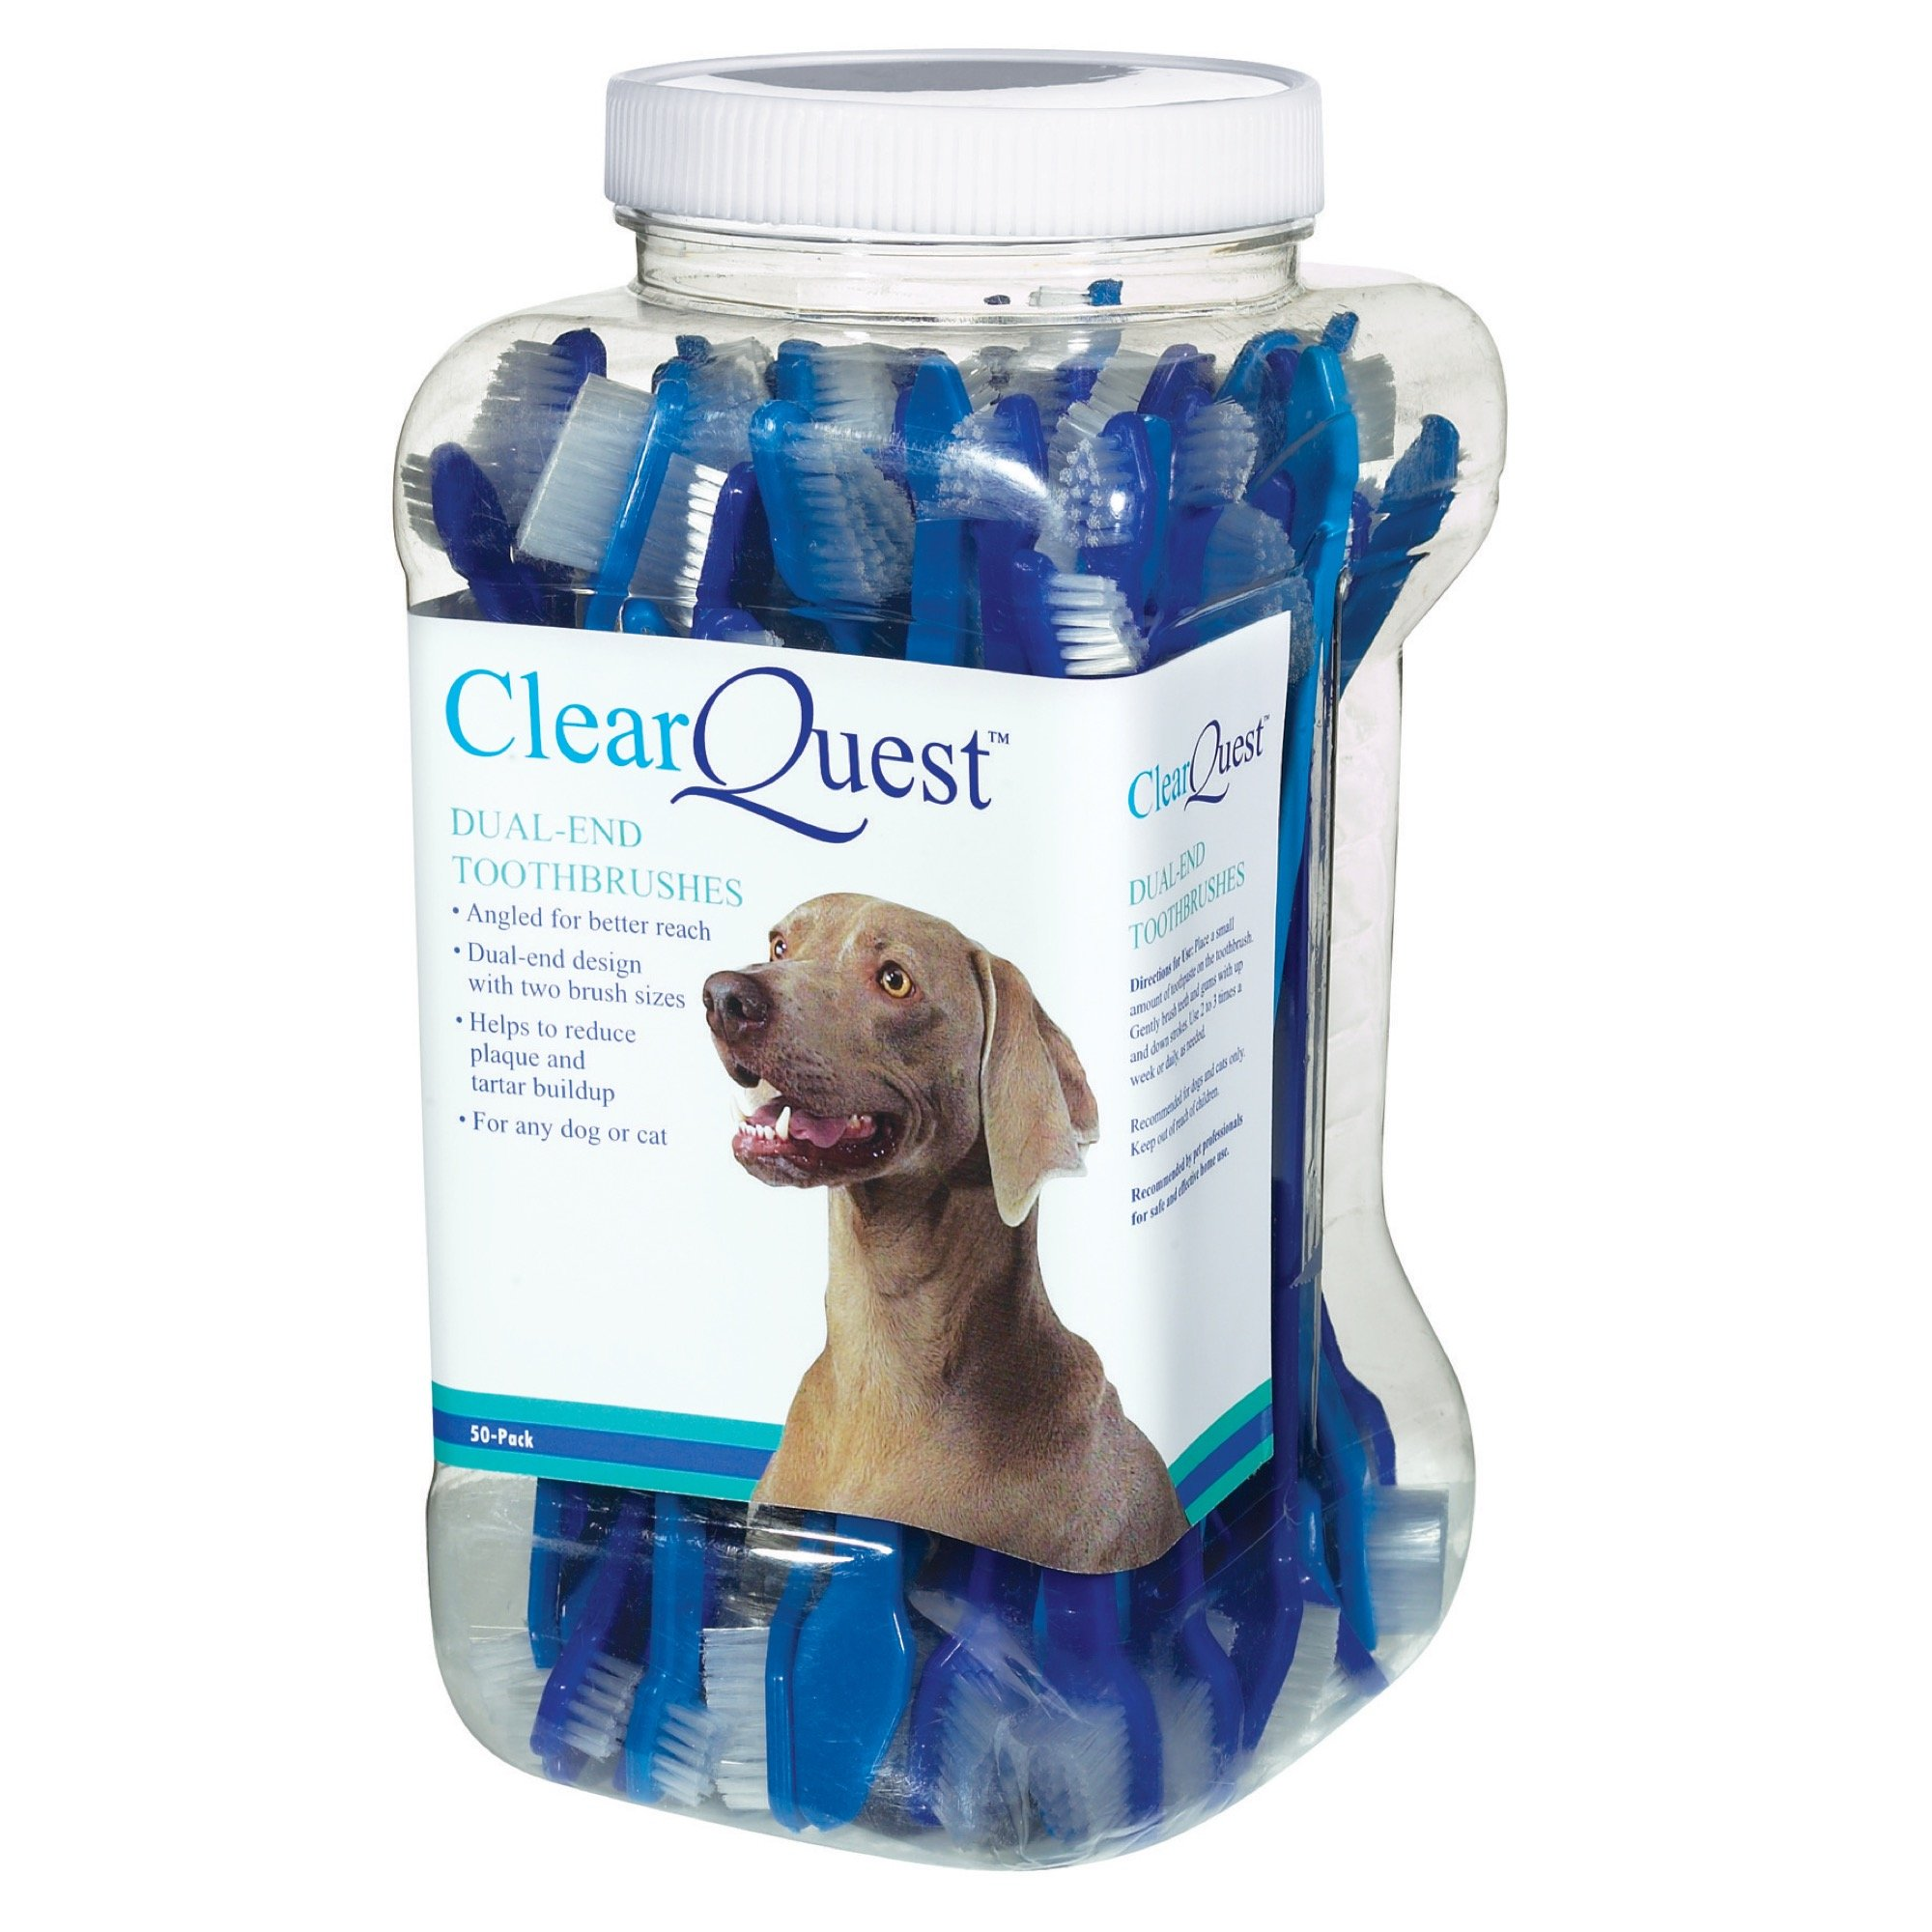 ClearQuest Dual-End Pet Toothbrushes, 9-Inch, 50/Canister, (Colors Vary)